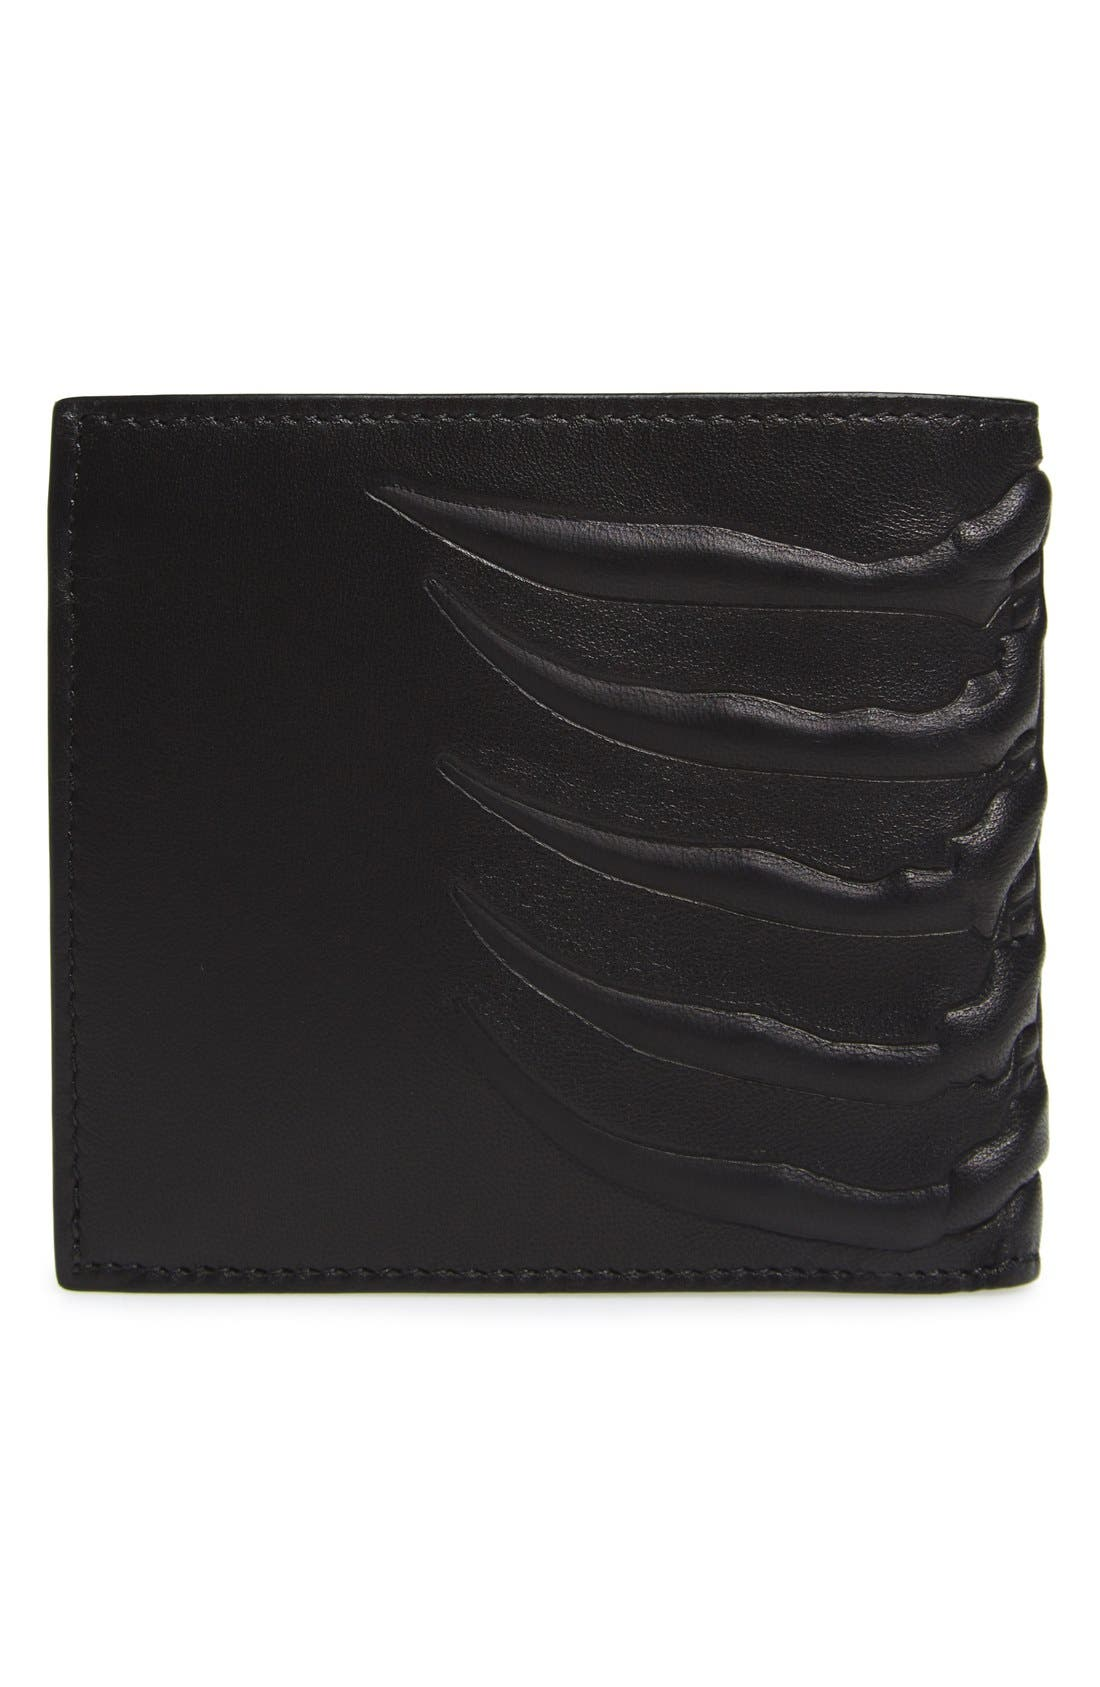 Ribcage Leather Wallet,                             Alternate thumbnail 3, color,                             001